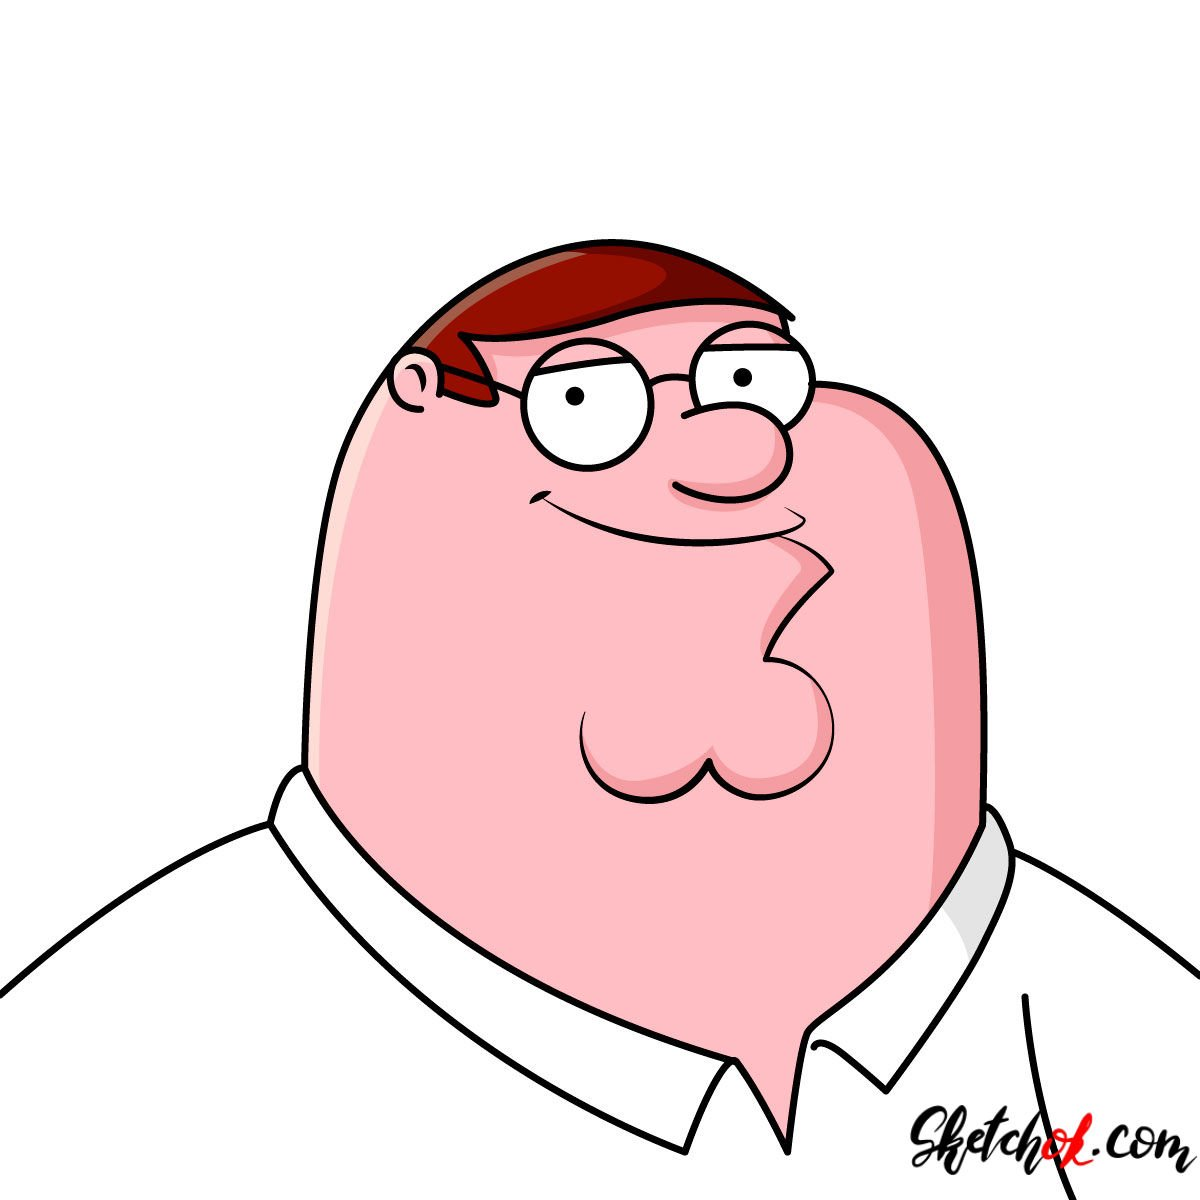 How to draw a portrait of Peter Griffin